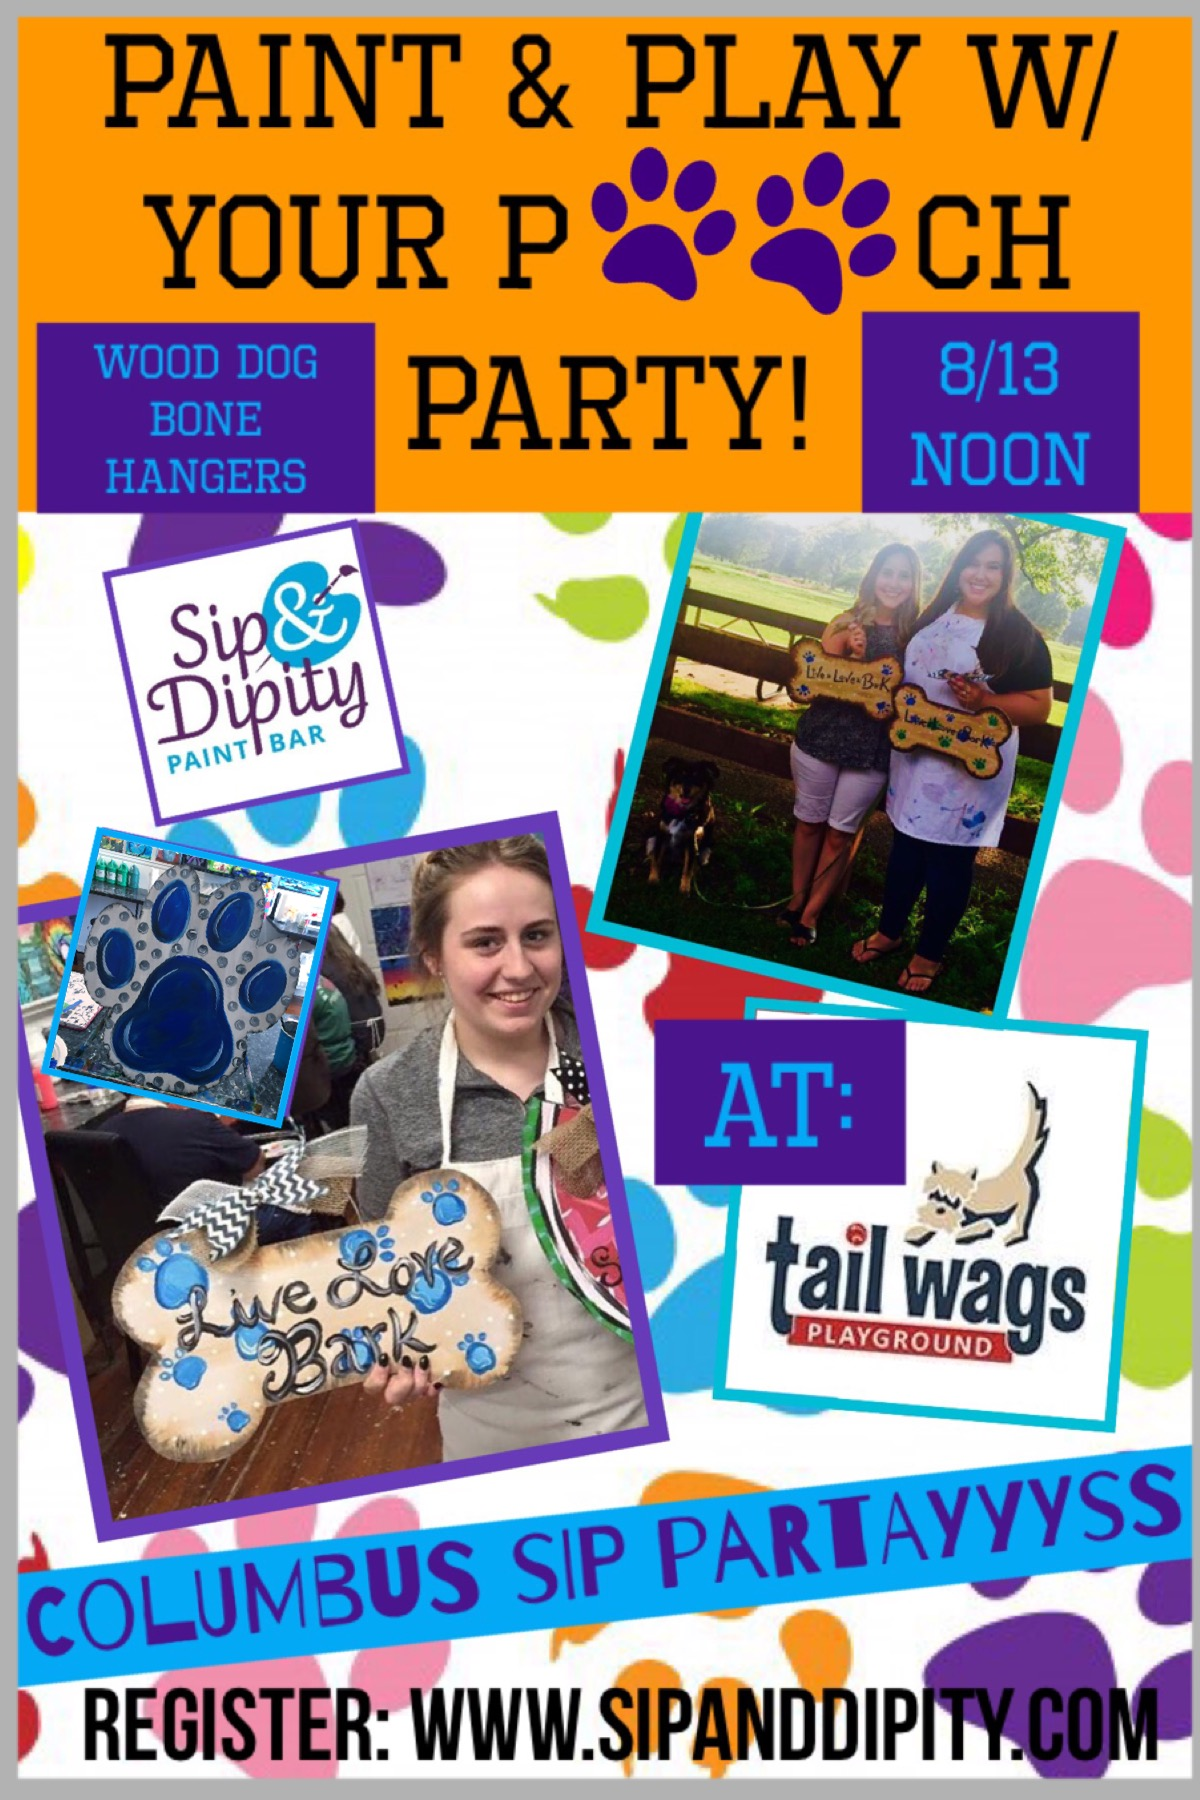 Paint & Play with your Pooch Party!